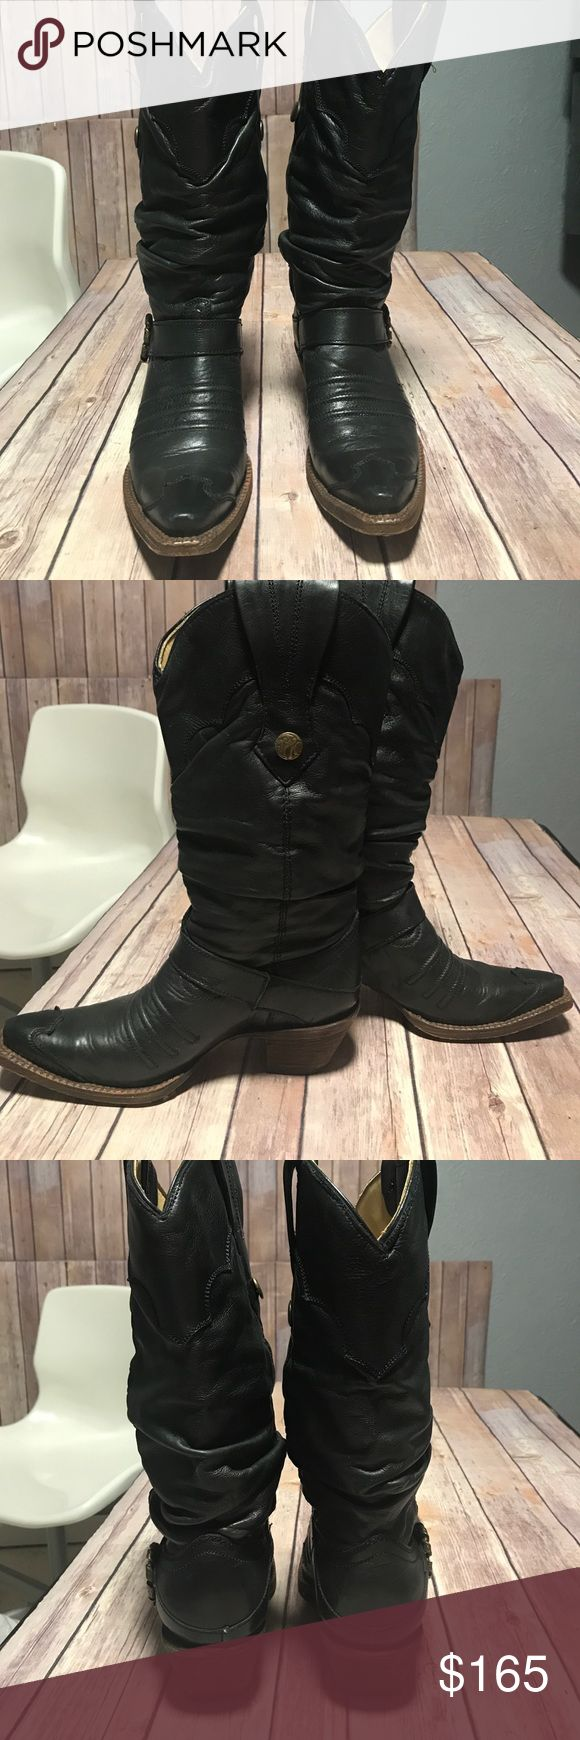 Corral Vintage boots Euc. Beautiful pair of black leather western boots. Used once. Corral Vintage Collection. Great quality Corral Shoes